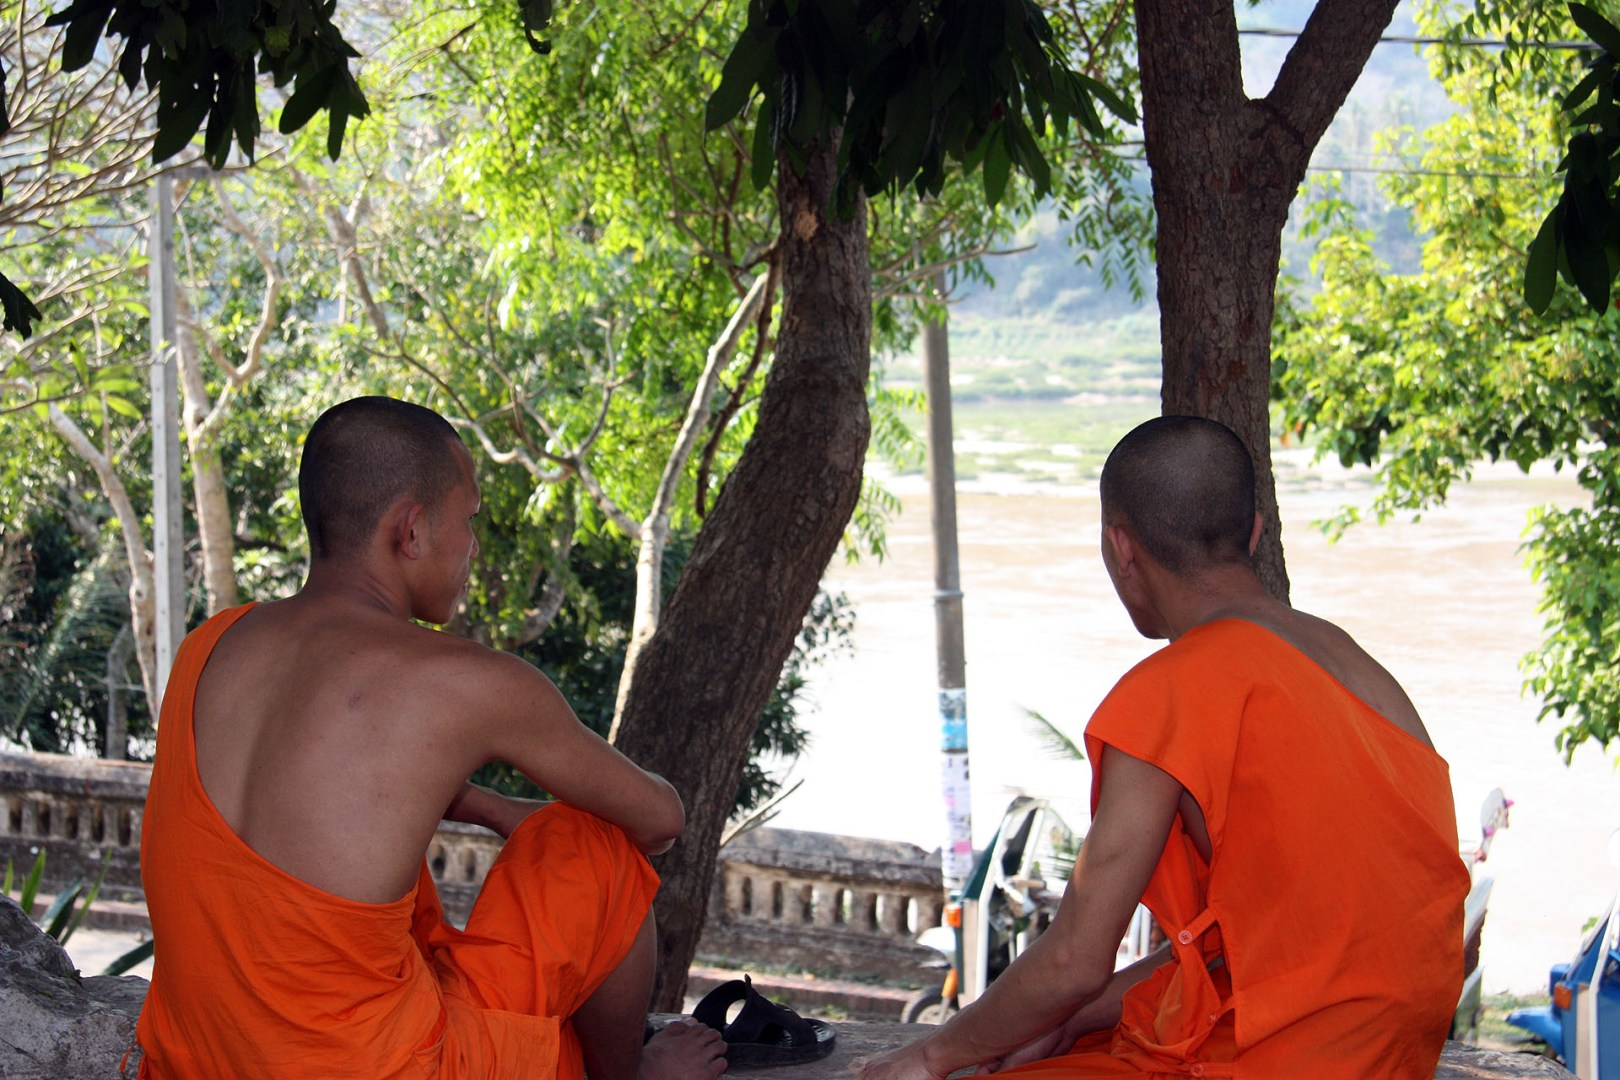 Two Monks relaxing by the river